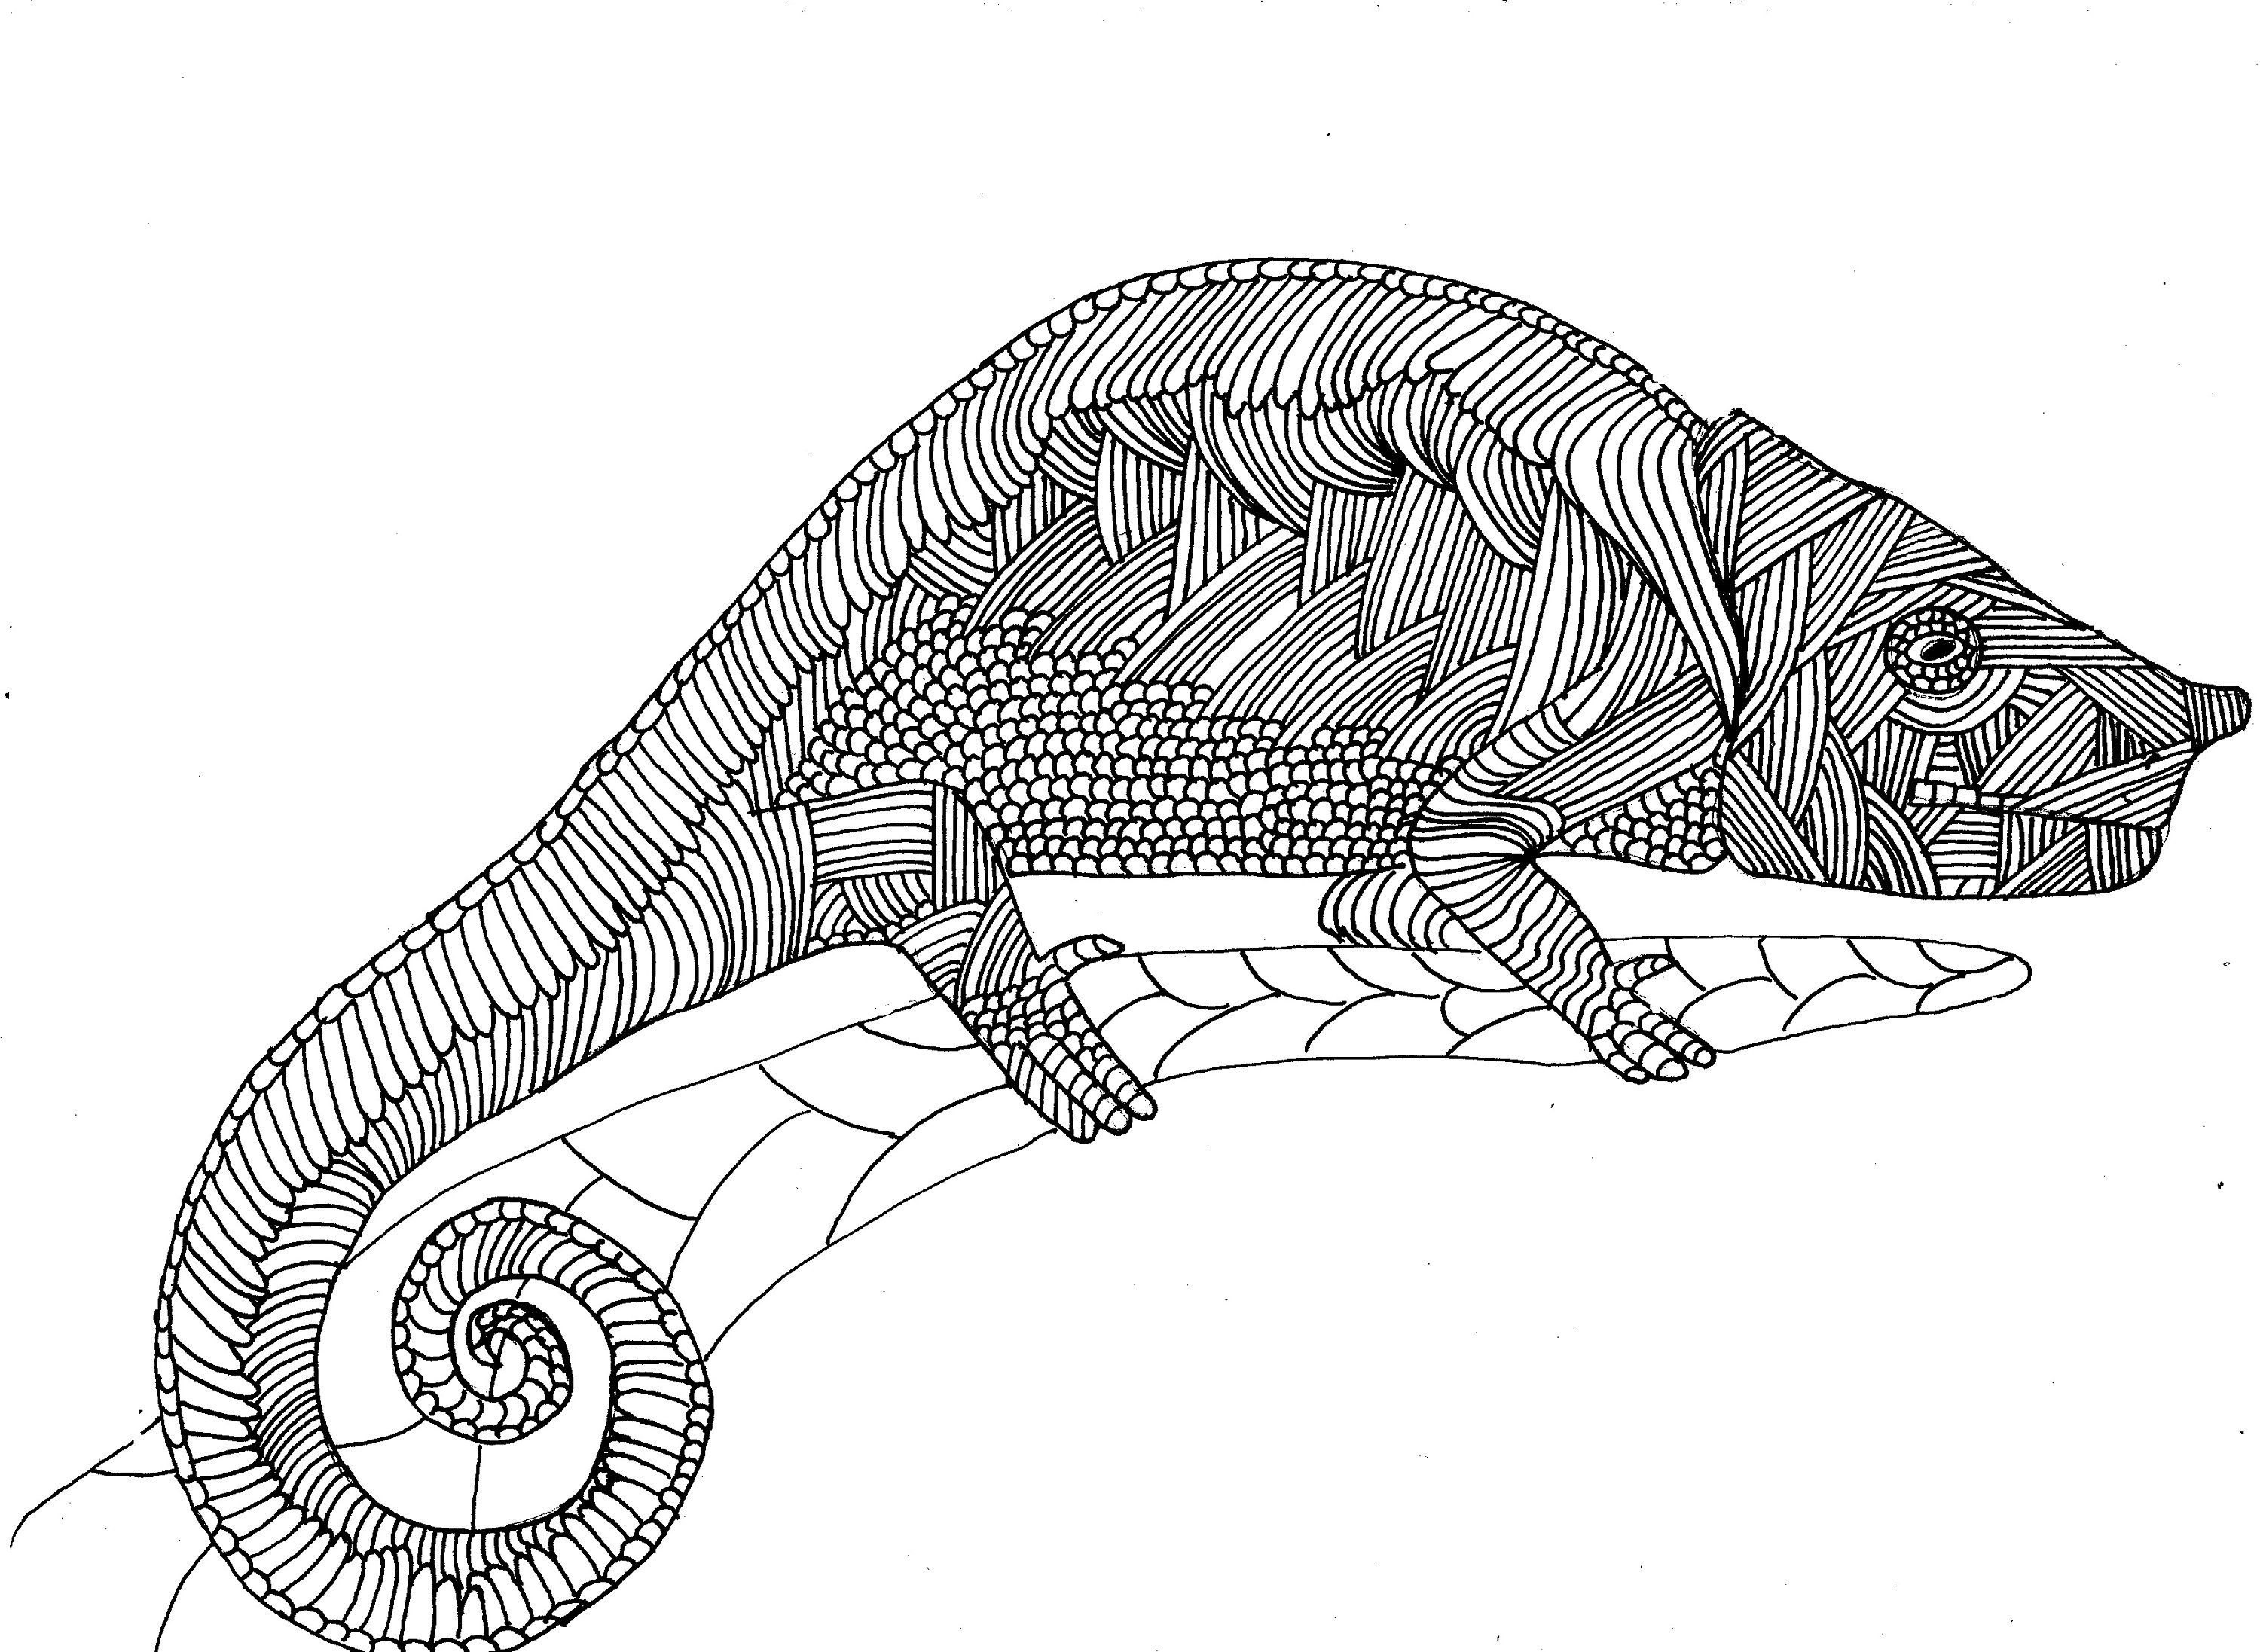 Chameleon Colouring page, digital product, adult colouring